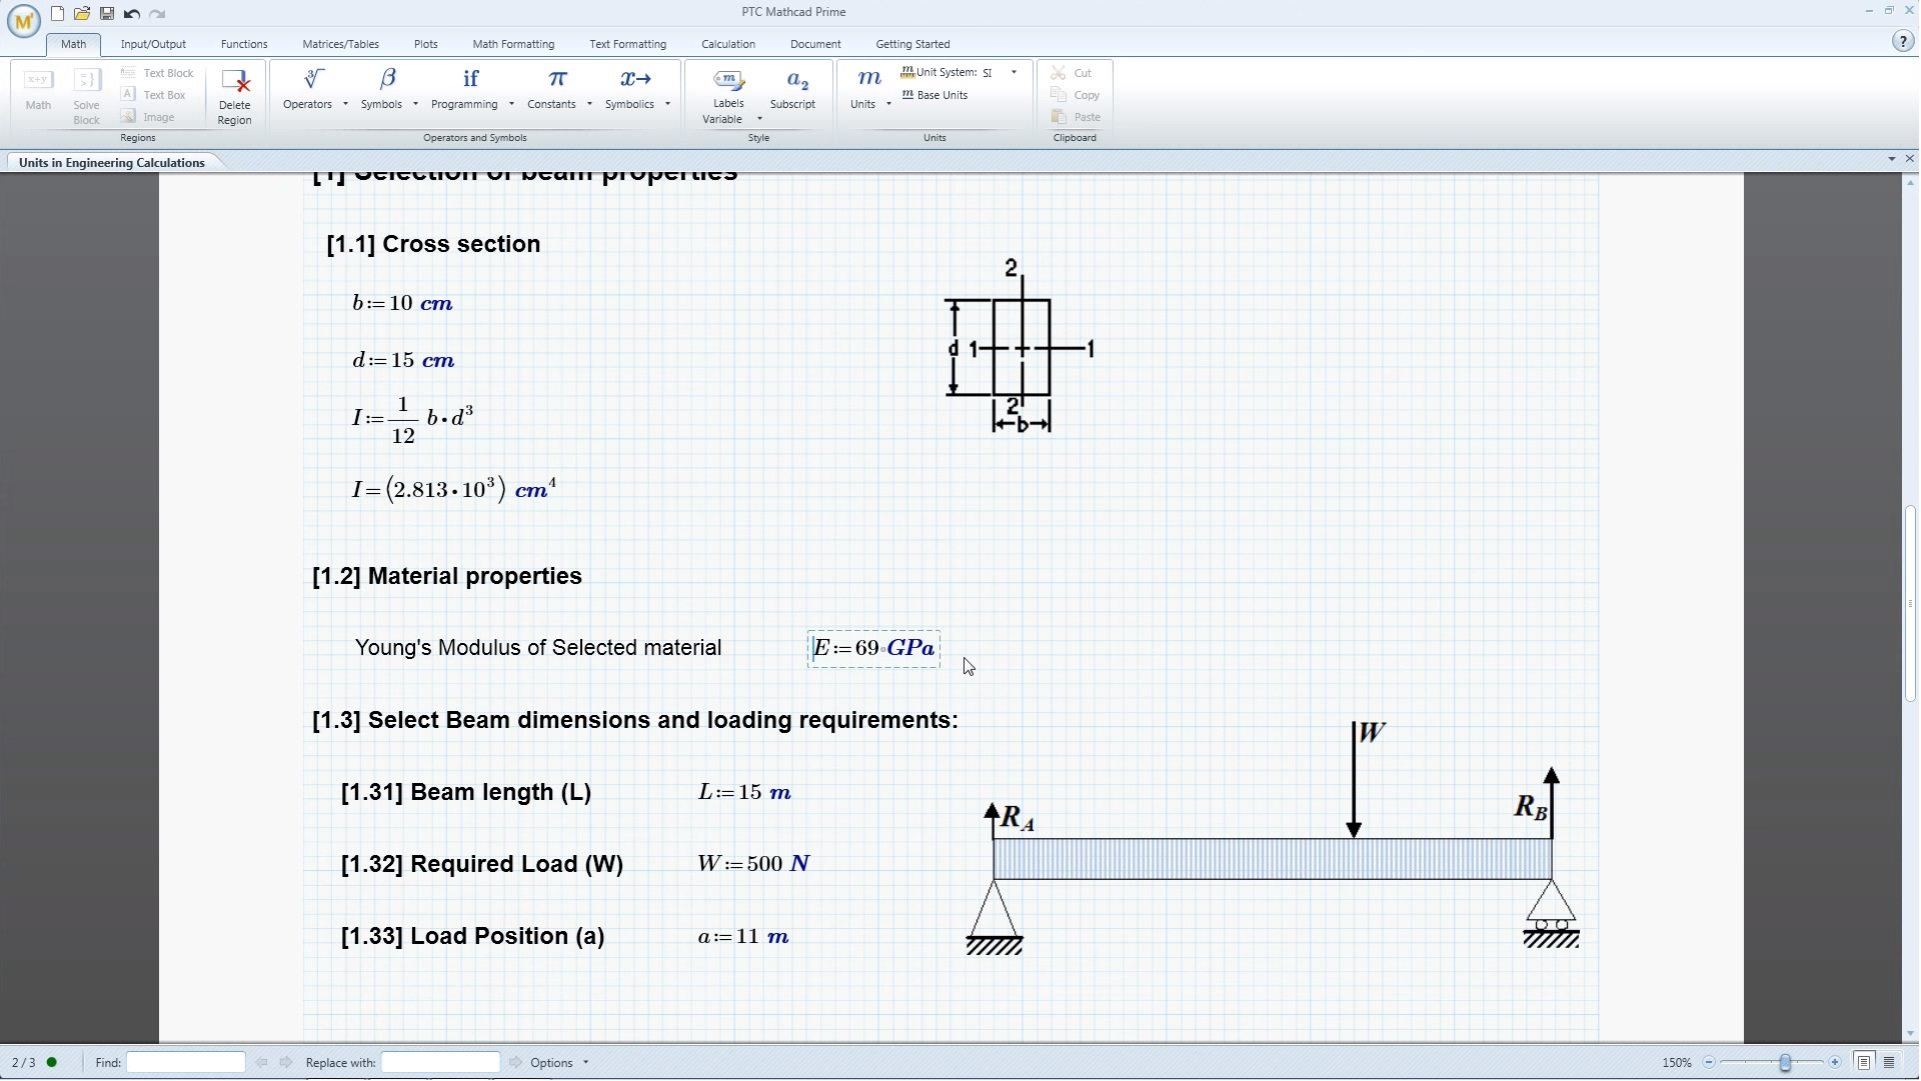 PTC Mathcad Demo - Beam Cross Section